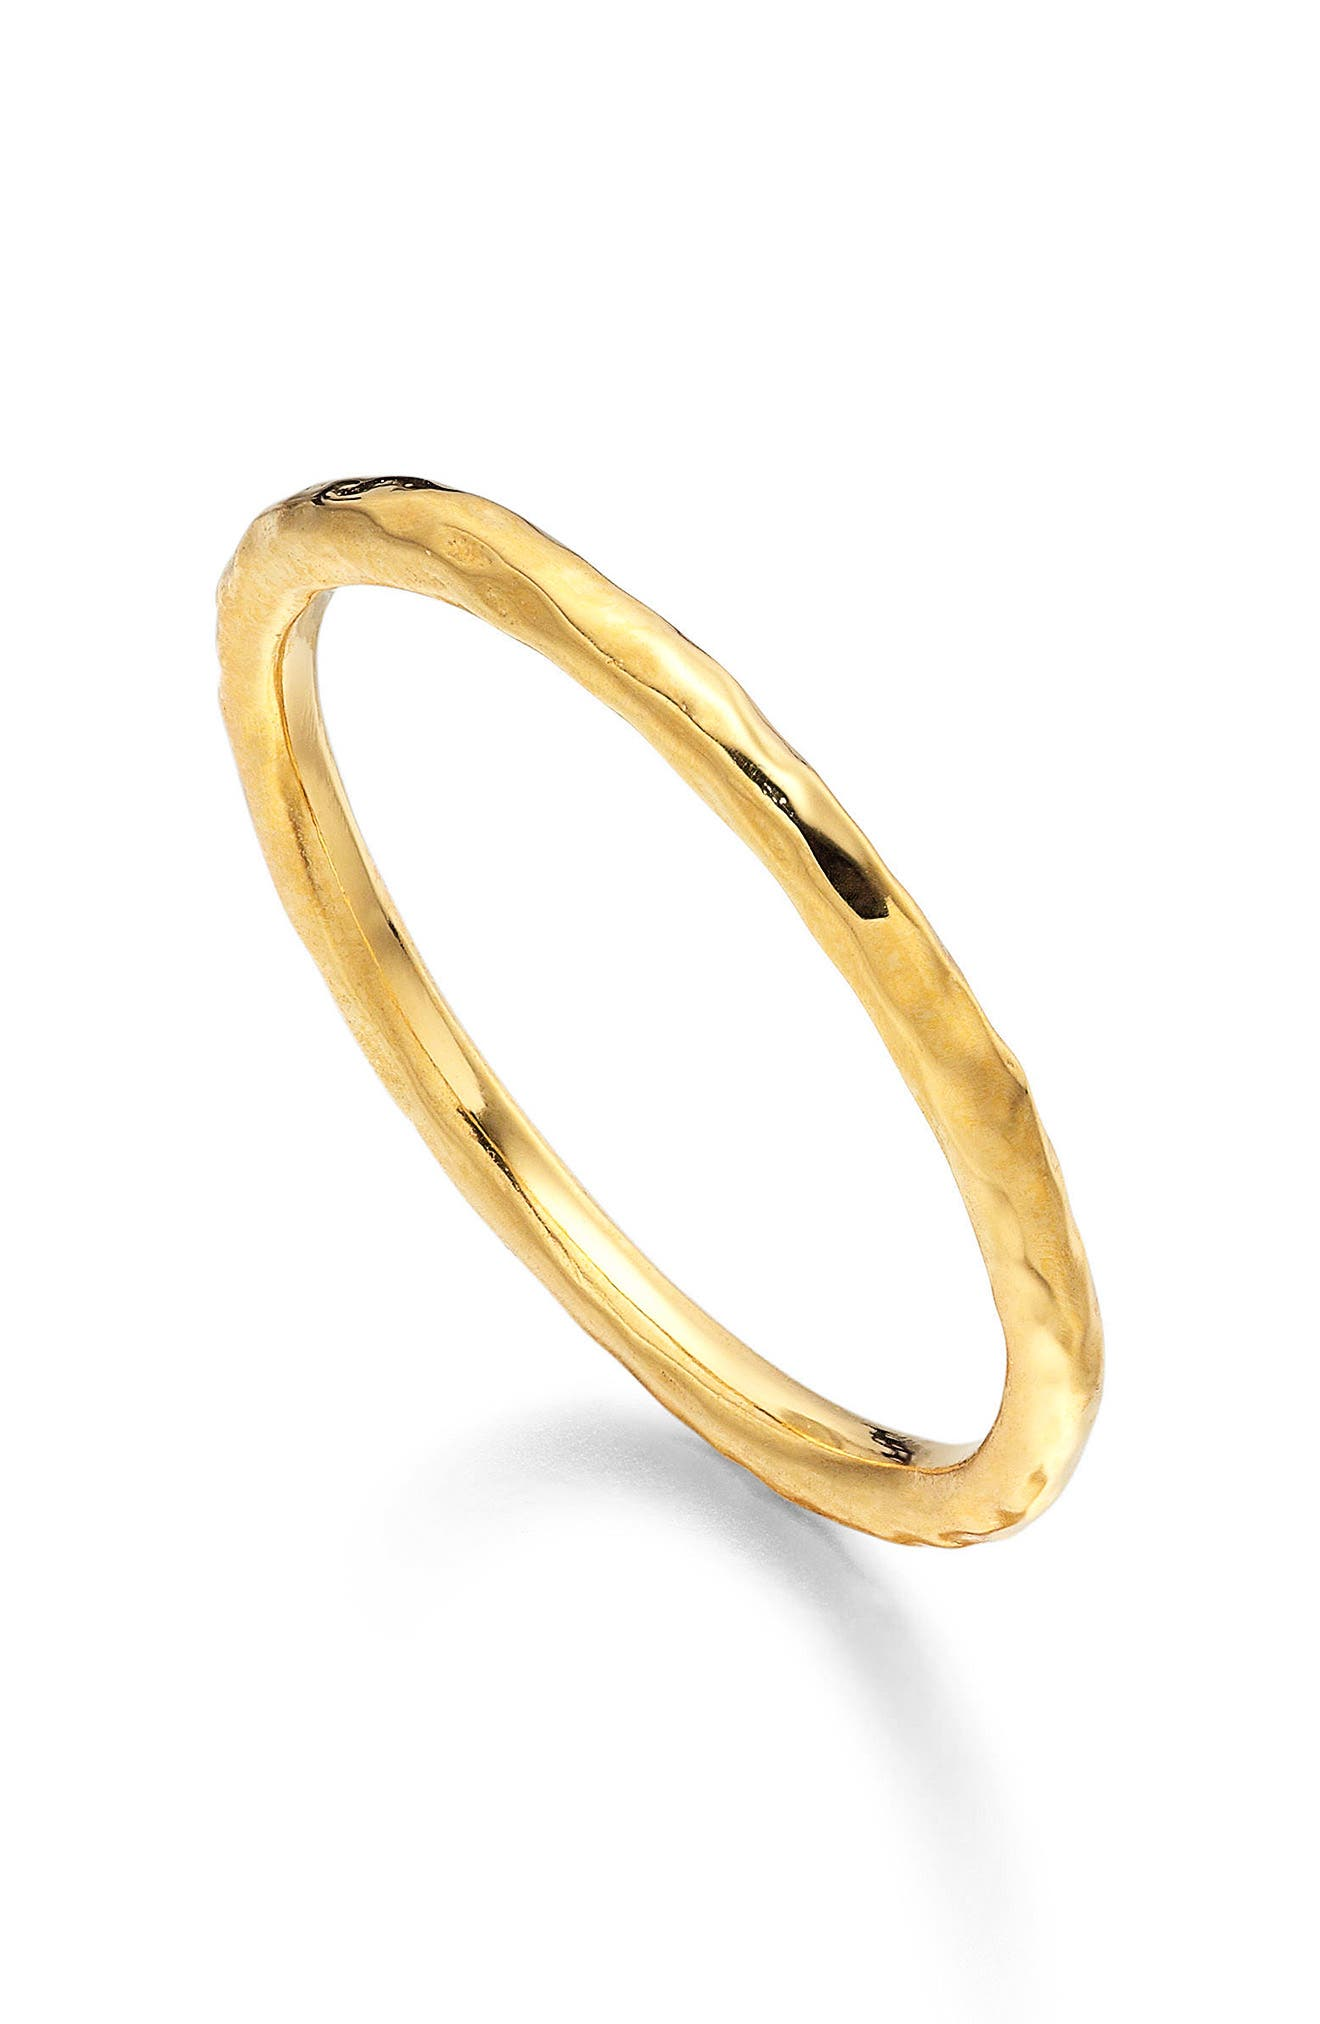 MONICA VINADER Siren Hammered Ring, Main, color, GOLD